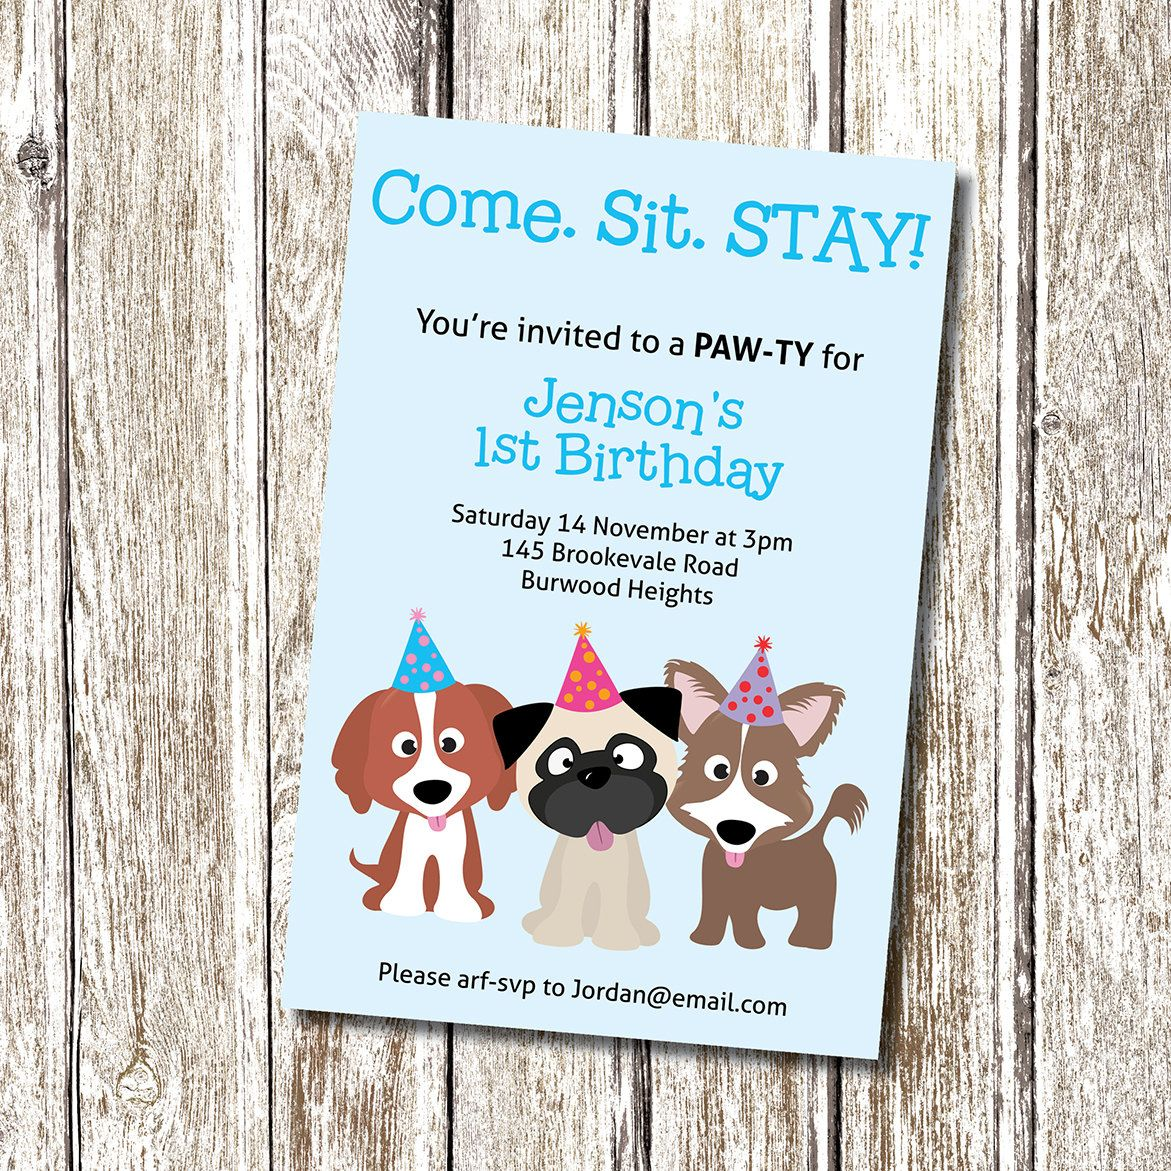 Puppy party invitation come sit stay printable and personalised puppy party invitation come sit stay printable by deedubdesigns 950 filmwisefo